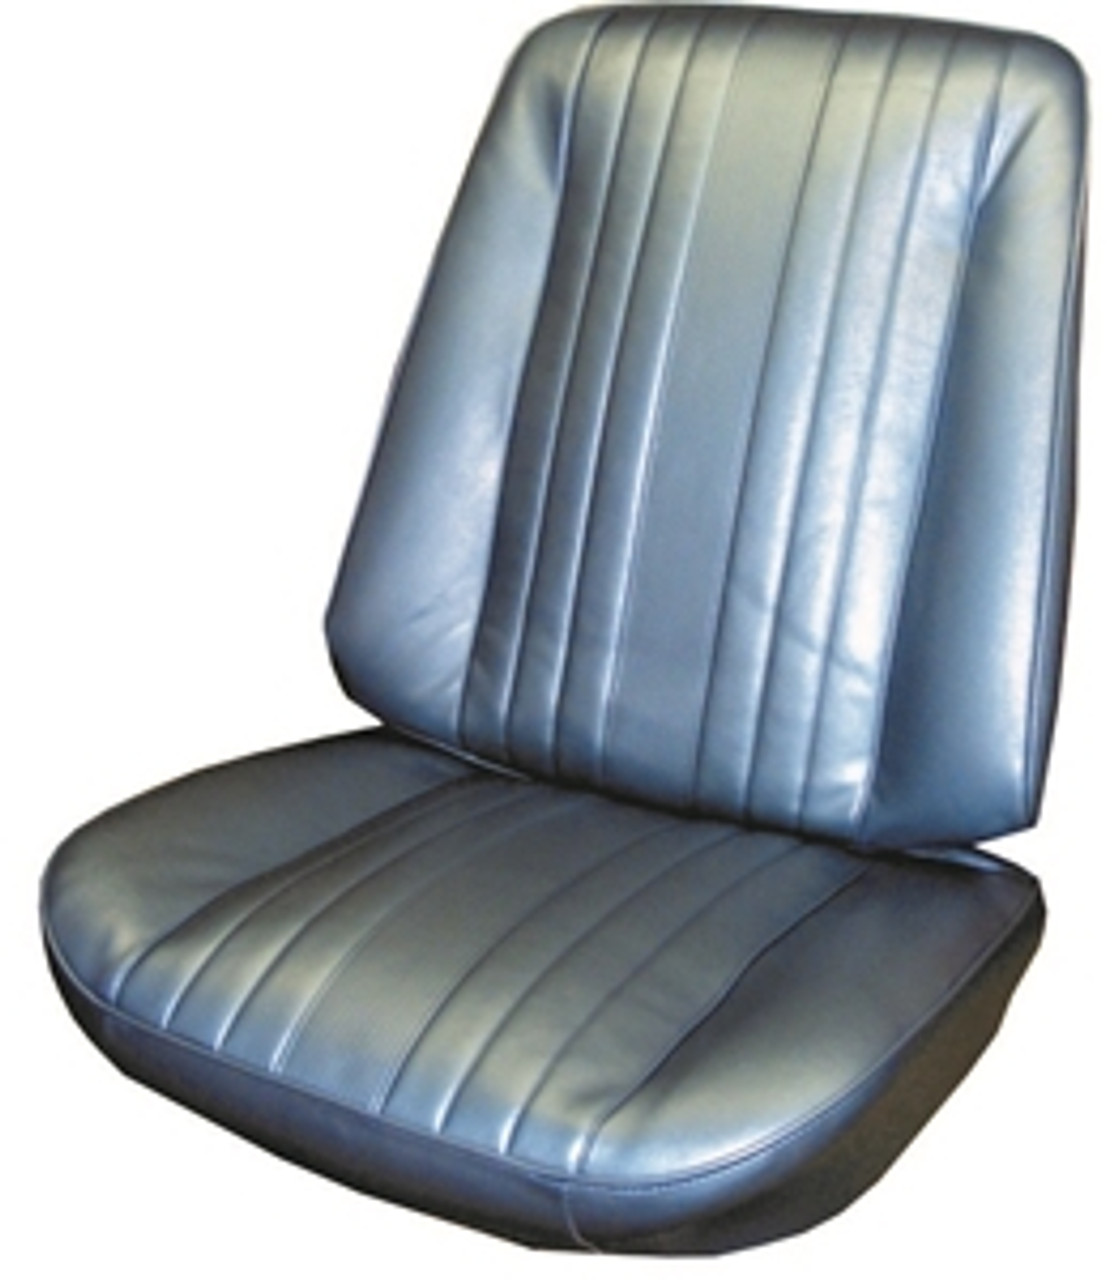 1969 Chevelle Seat Covers (Front & Rear)